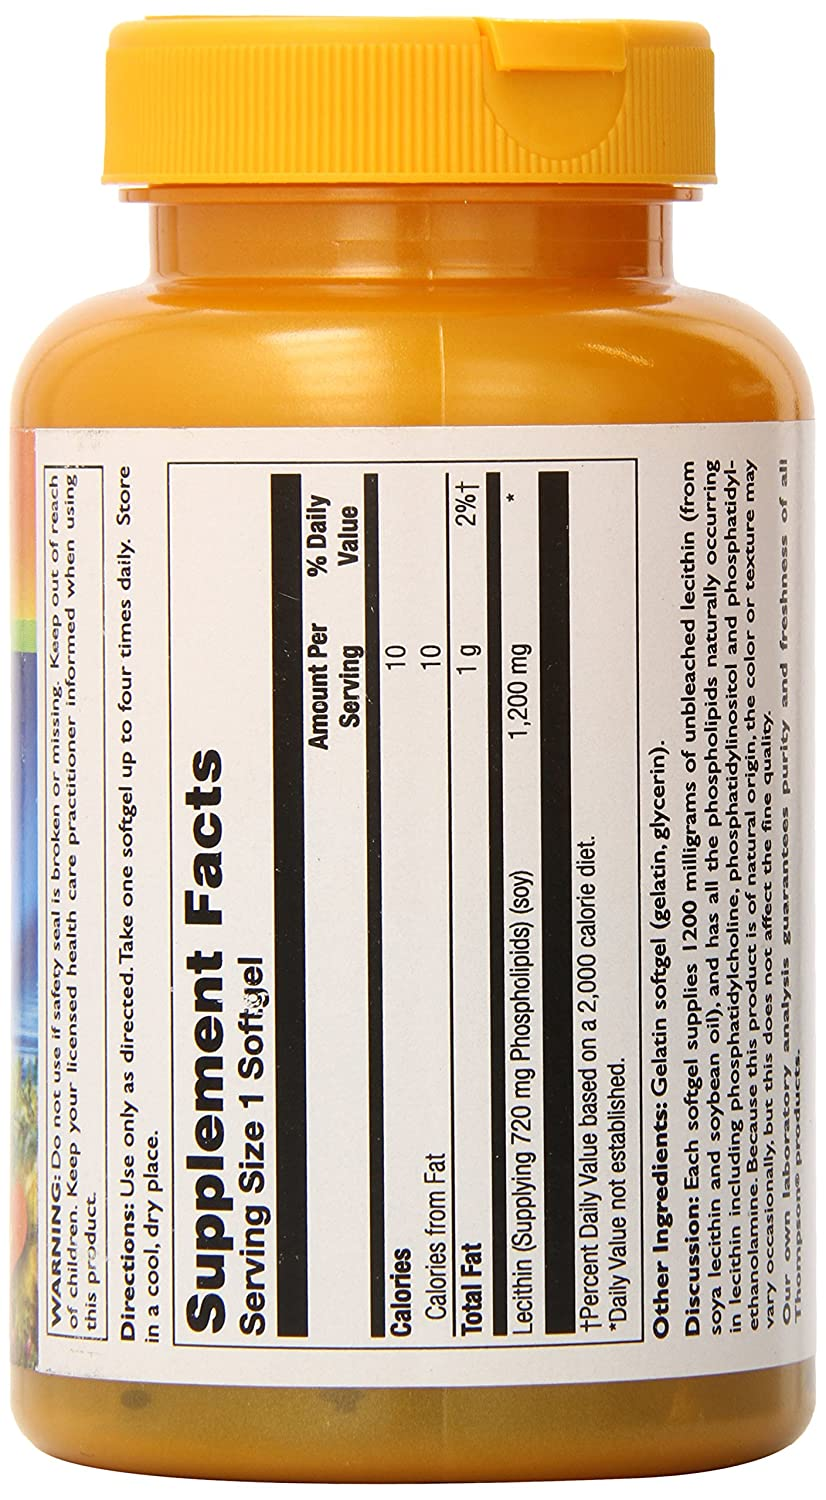 Amazon.com: Thompson Lecithin Softgels, 1200 Mg, 60 Count: Health & Personal Care